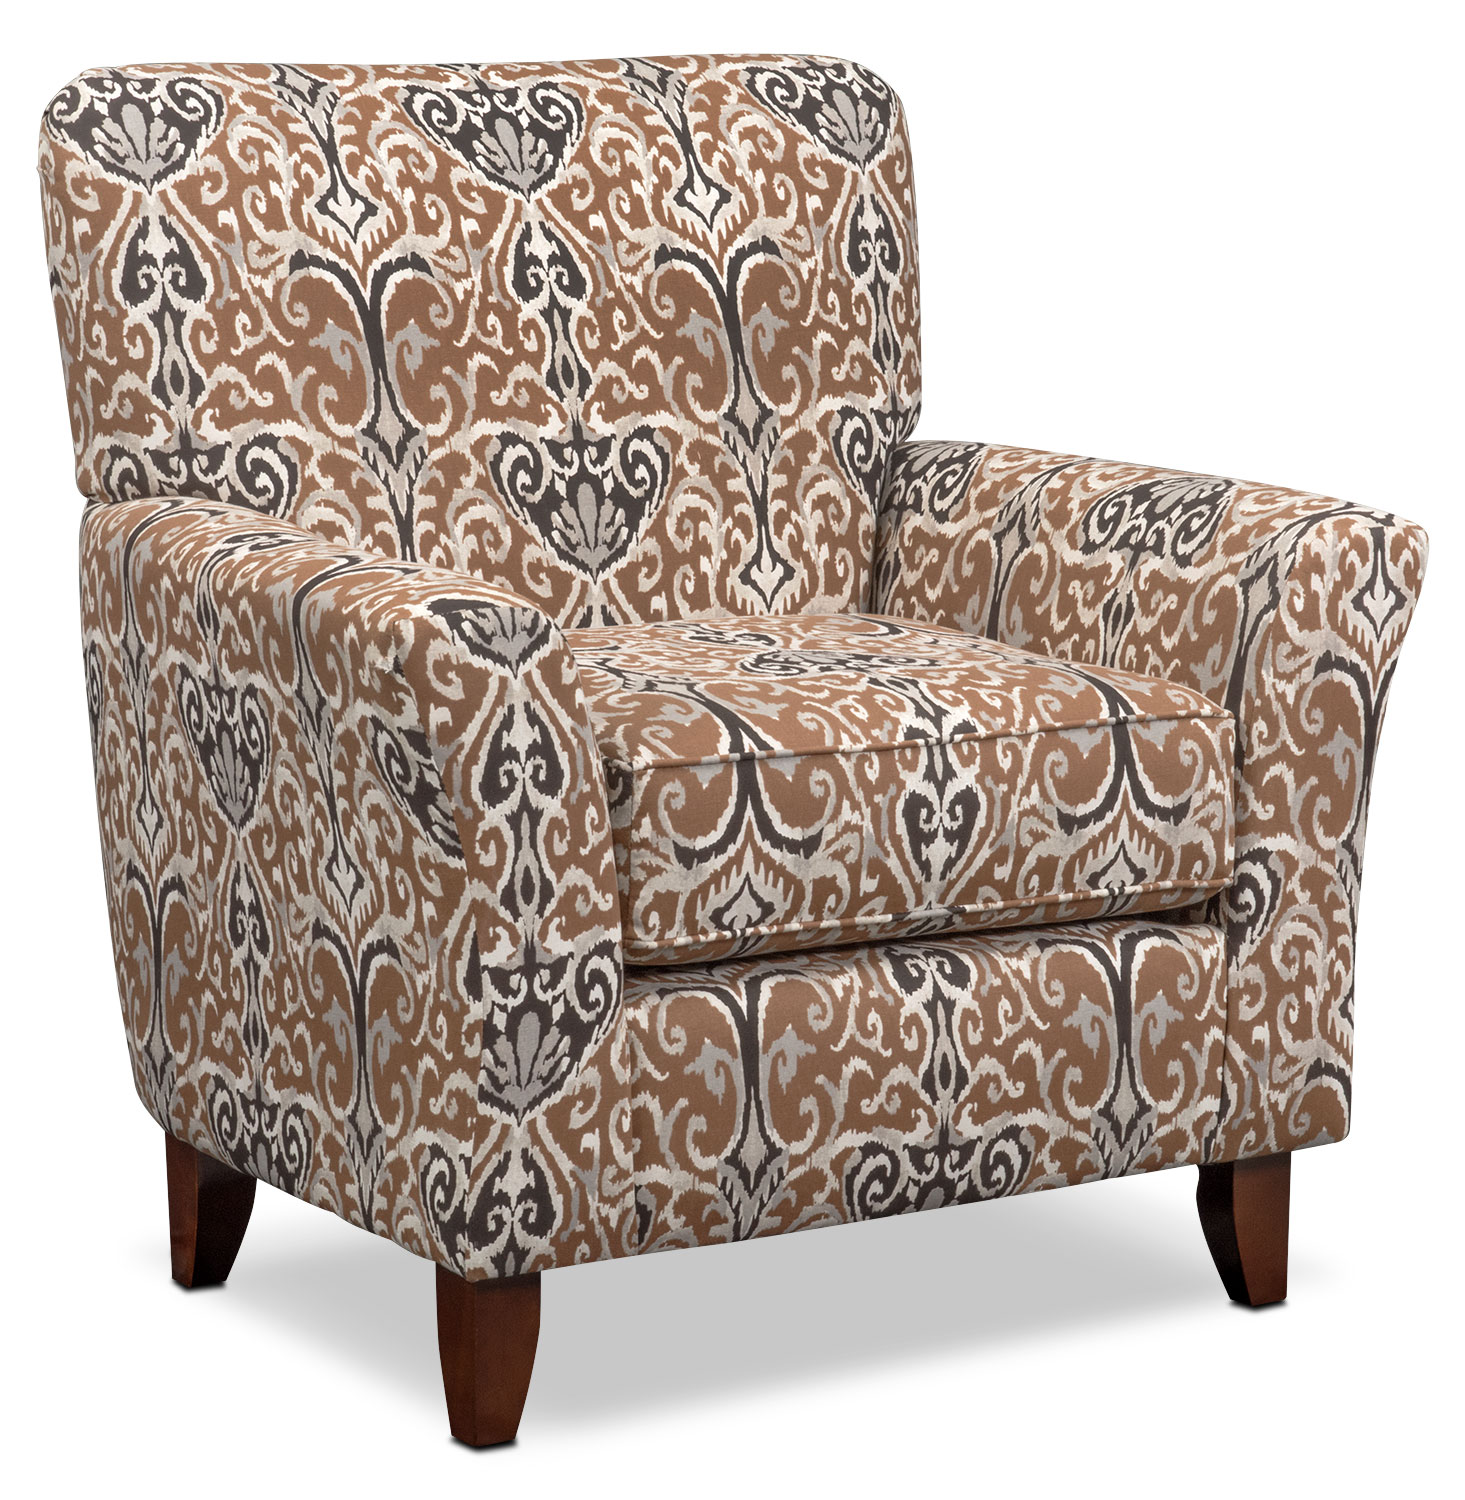 Carla 2 Piece Sectional and Accent Chair Set Chocolate